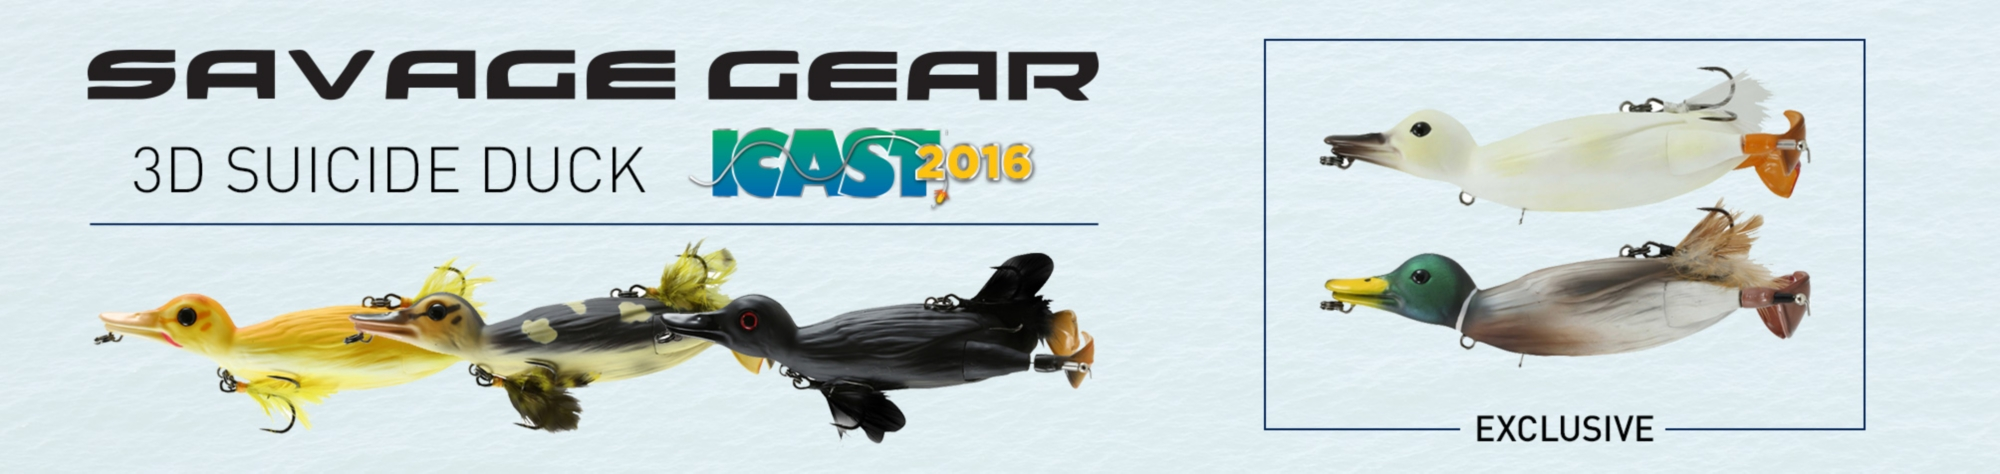 Savage Gear Baits Exclusive Styles